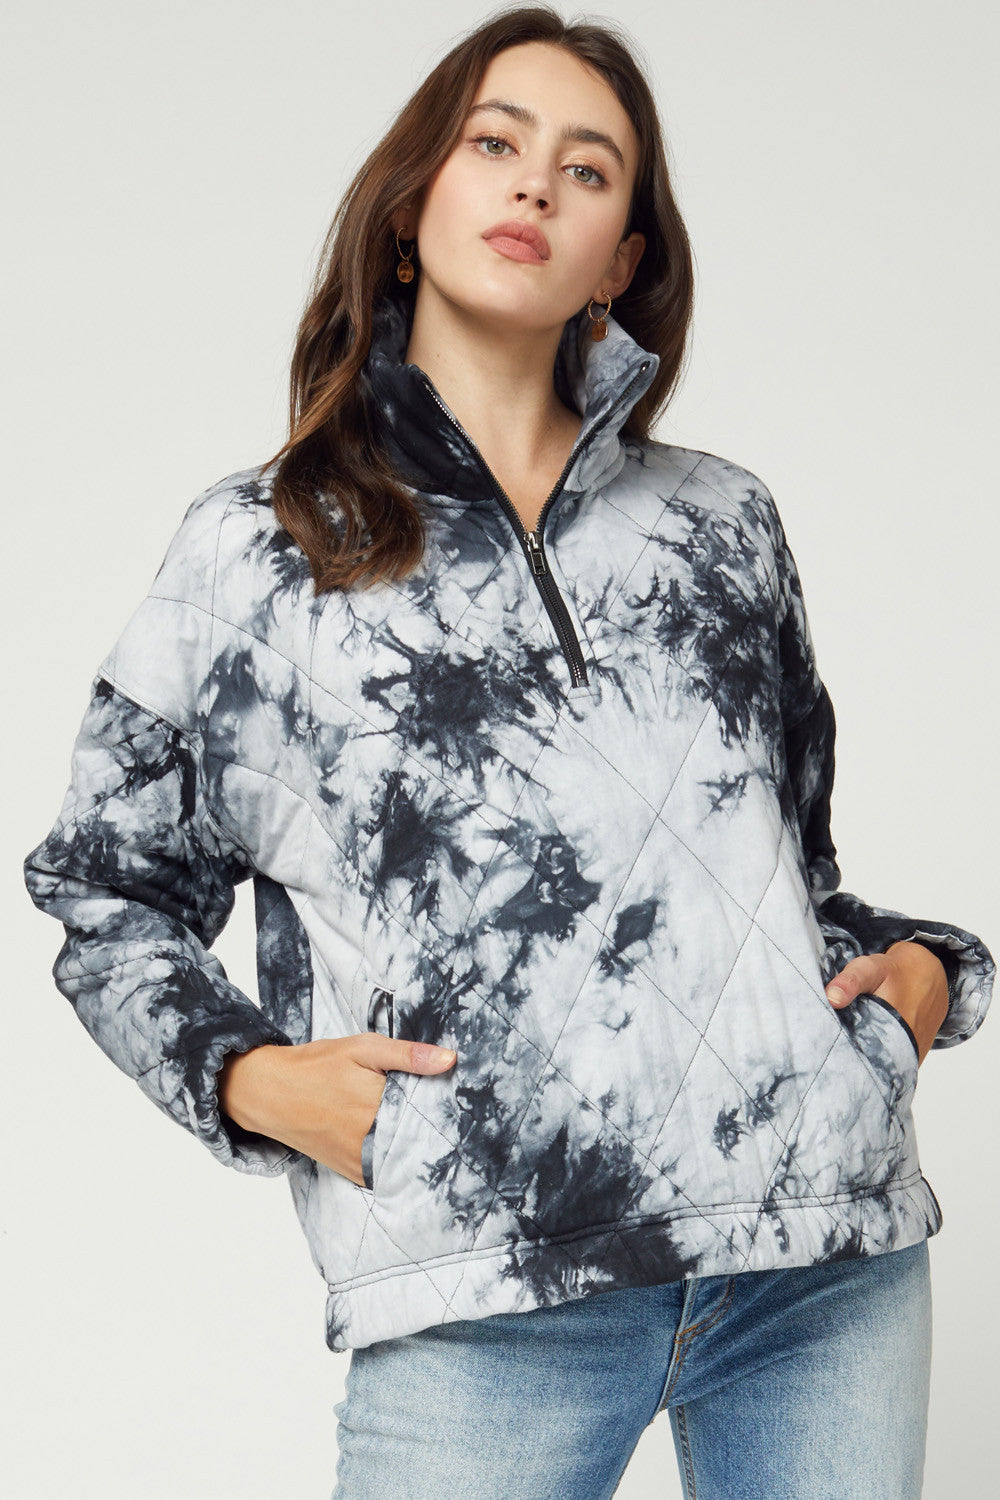 Among the Clouds Pullover - Black